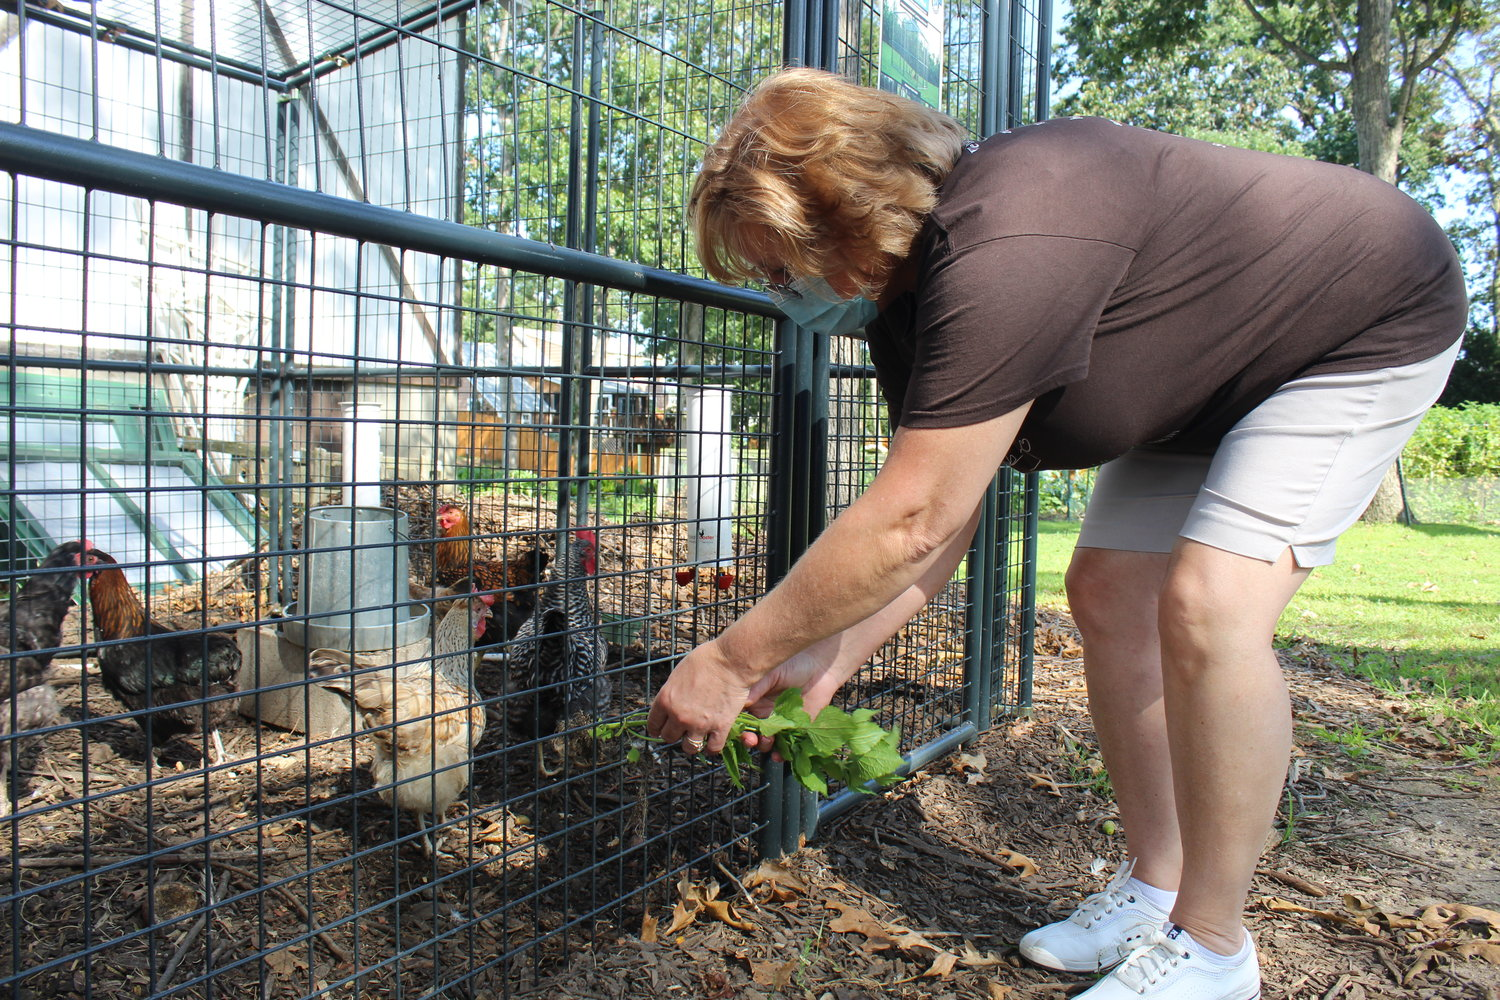 Black, of North Bellmore, fed some leafy greens to the chickens at St. Francis Episcopal Church.